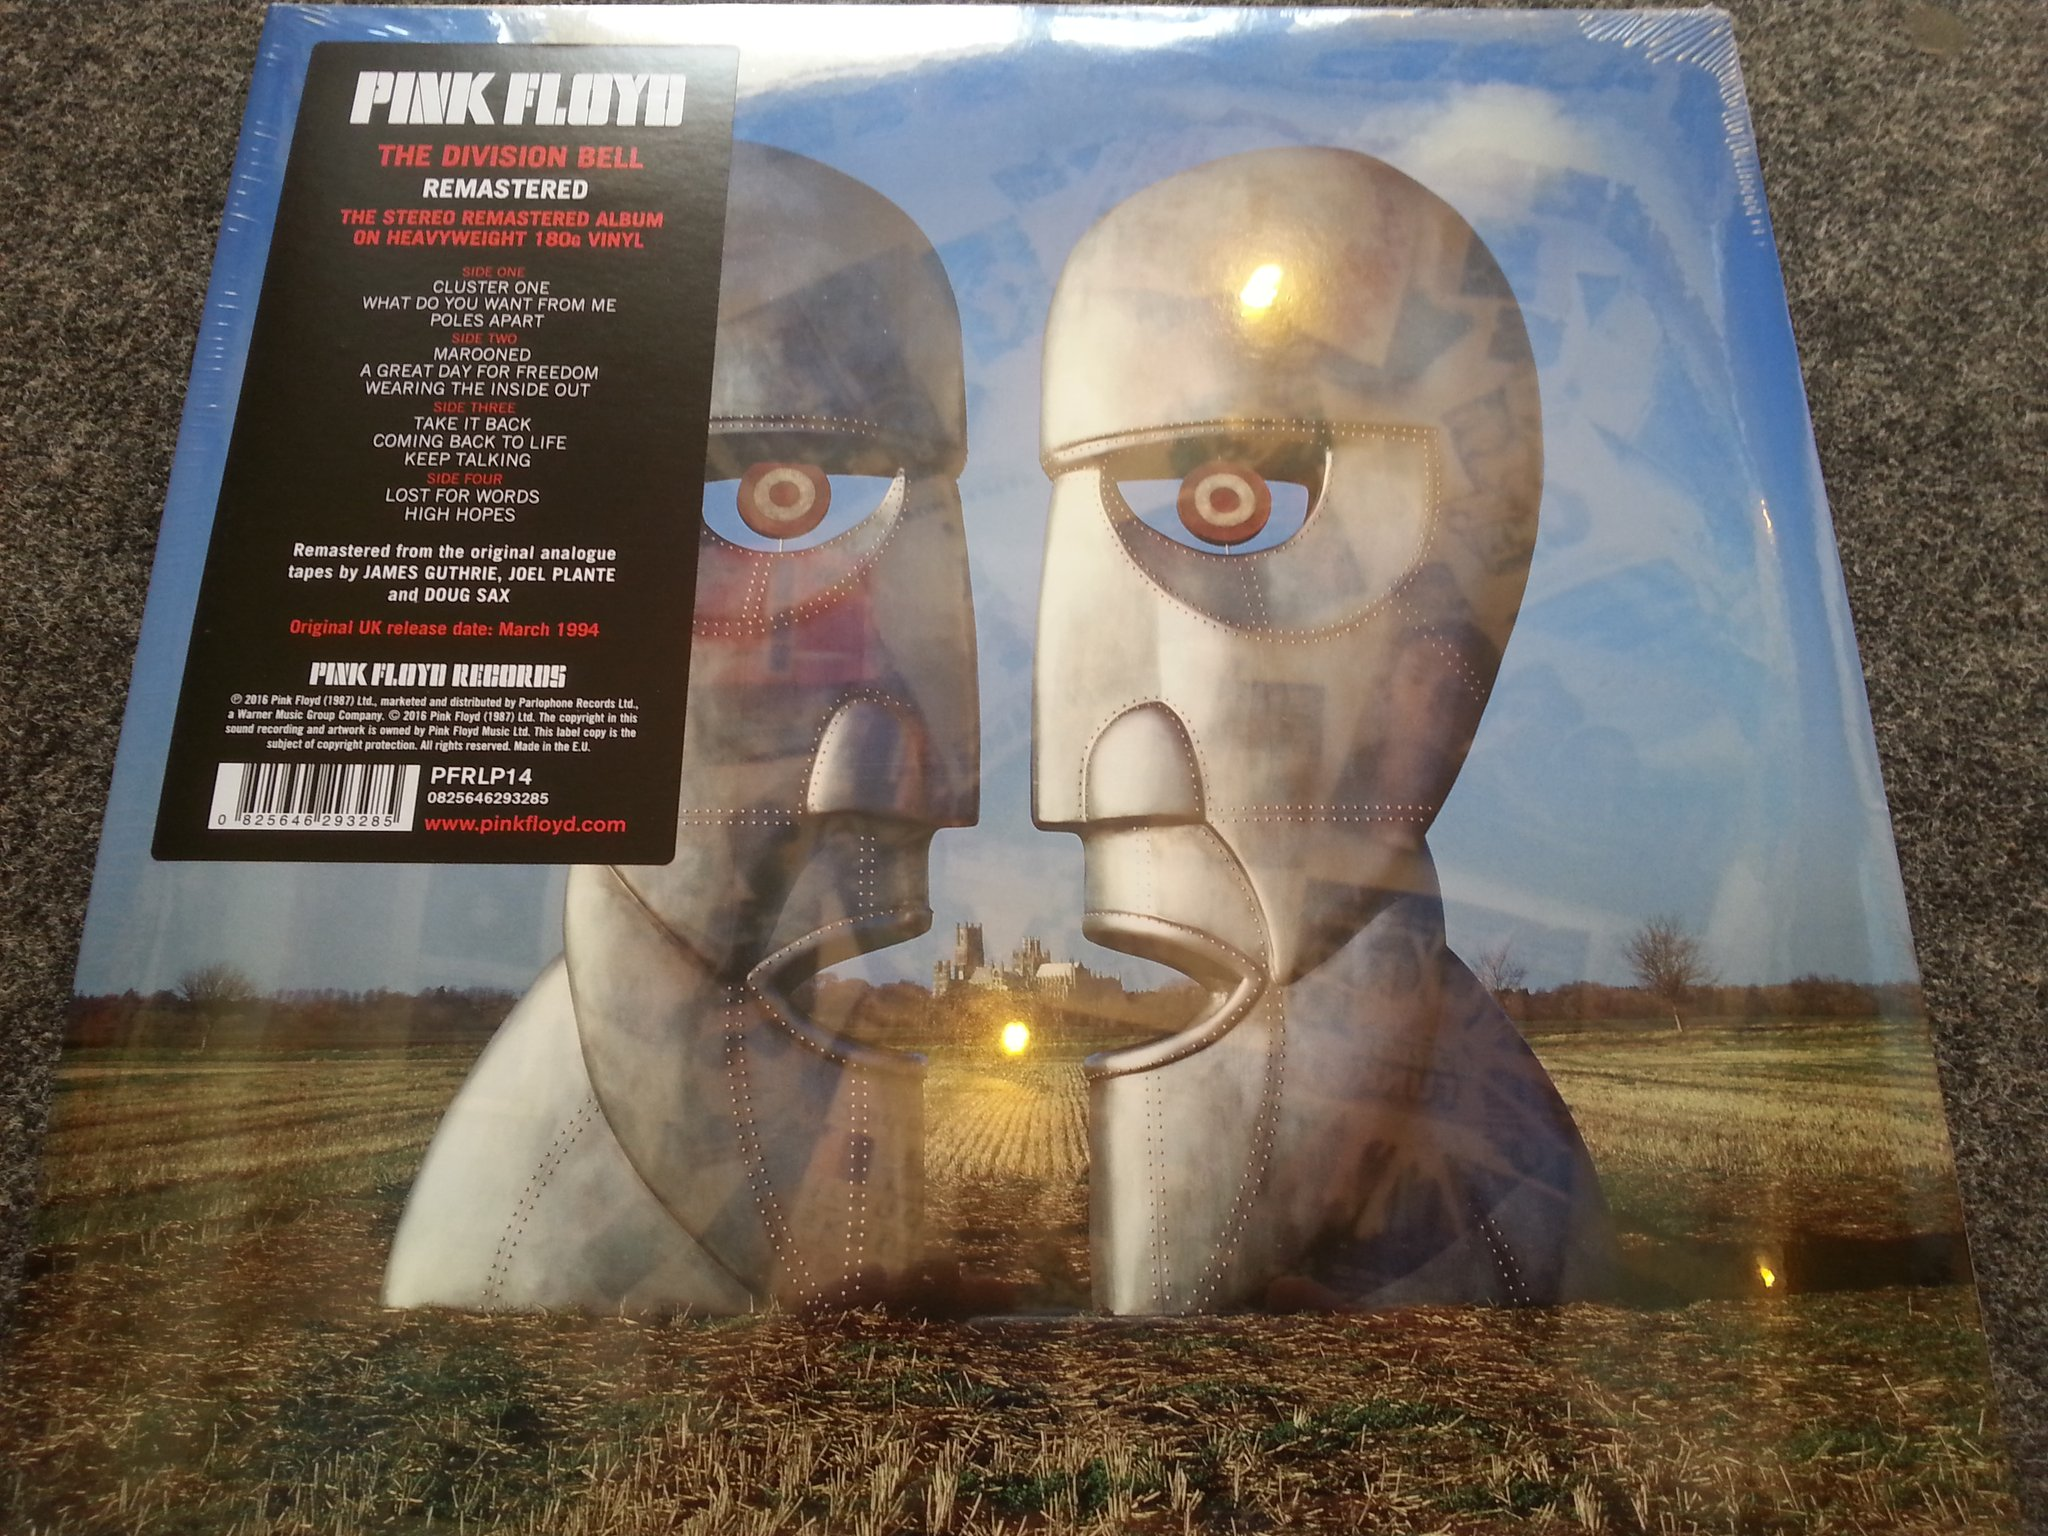 101 Collectors Records On Twitter Pink Floyd S The Division Bell